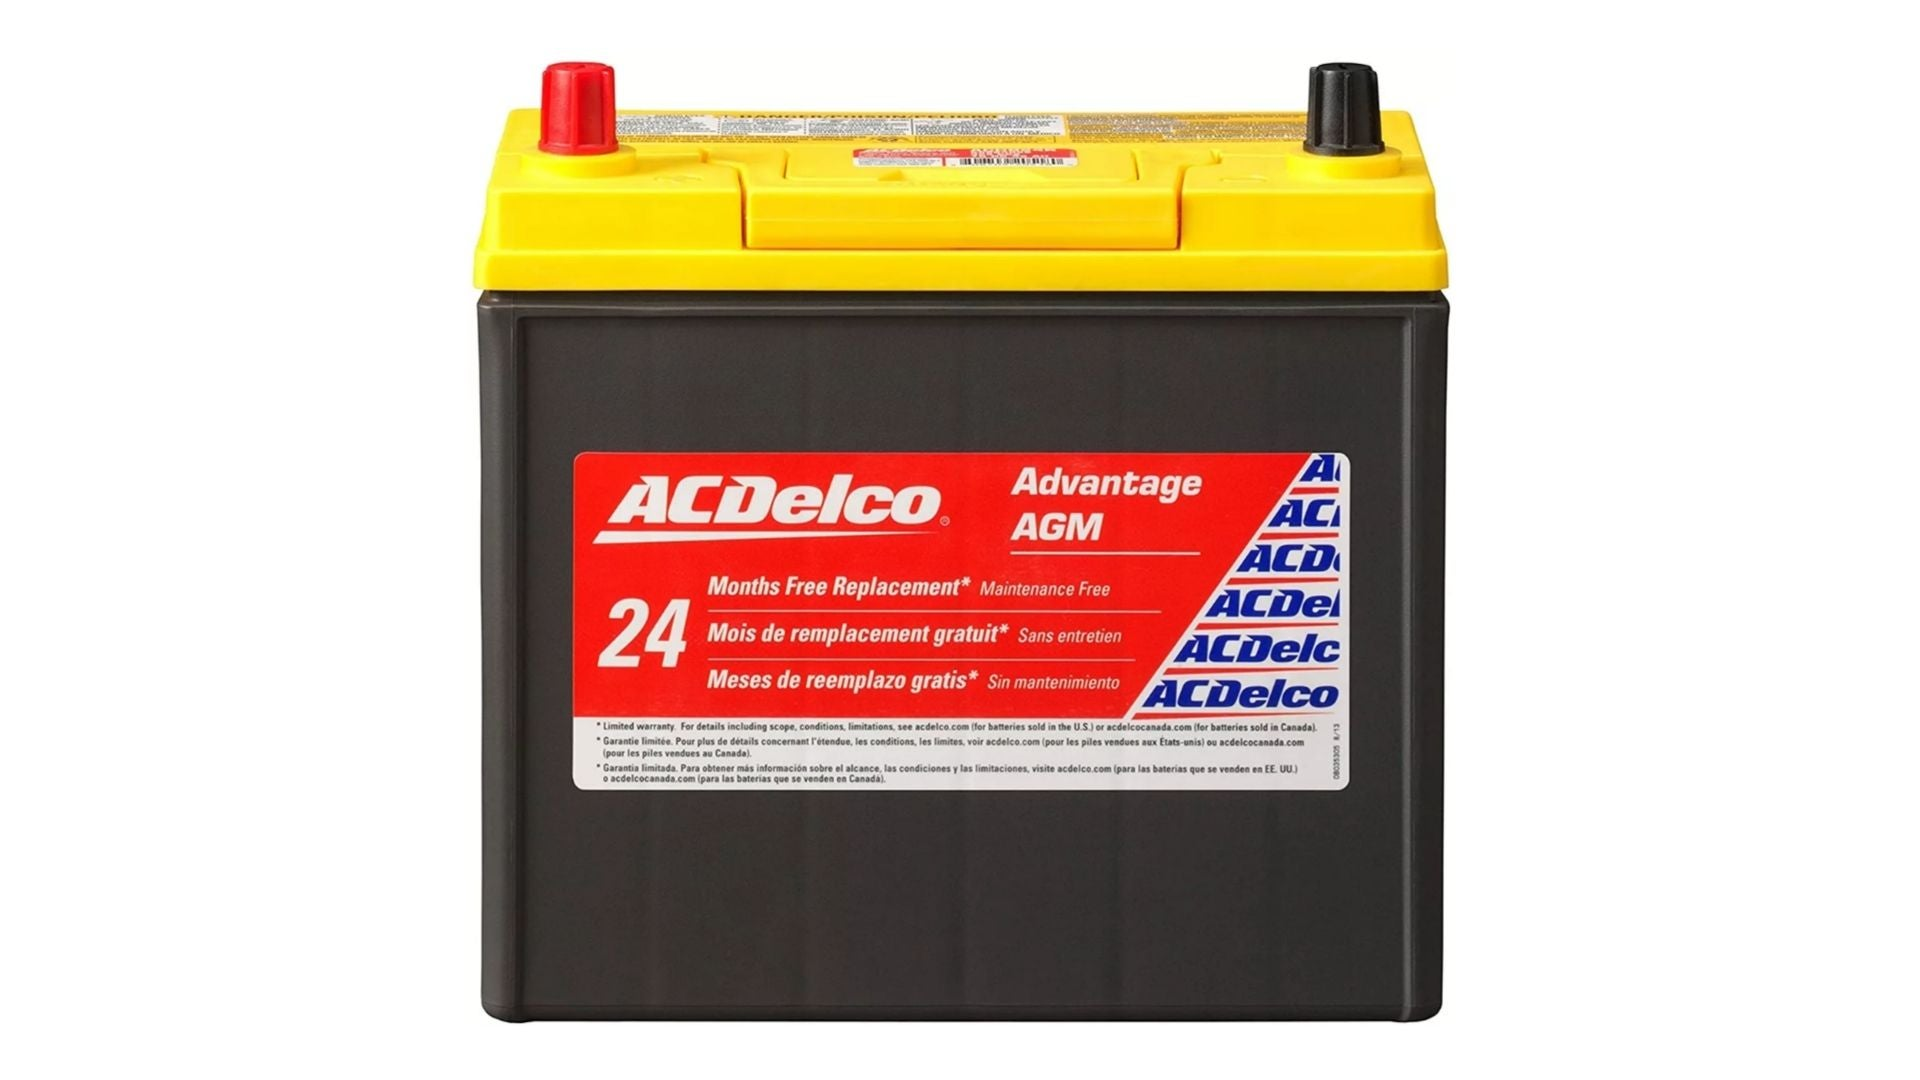 ACDelco Gold Hybrid Vehicle Battery